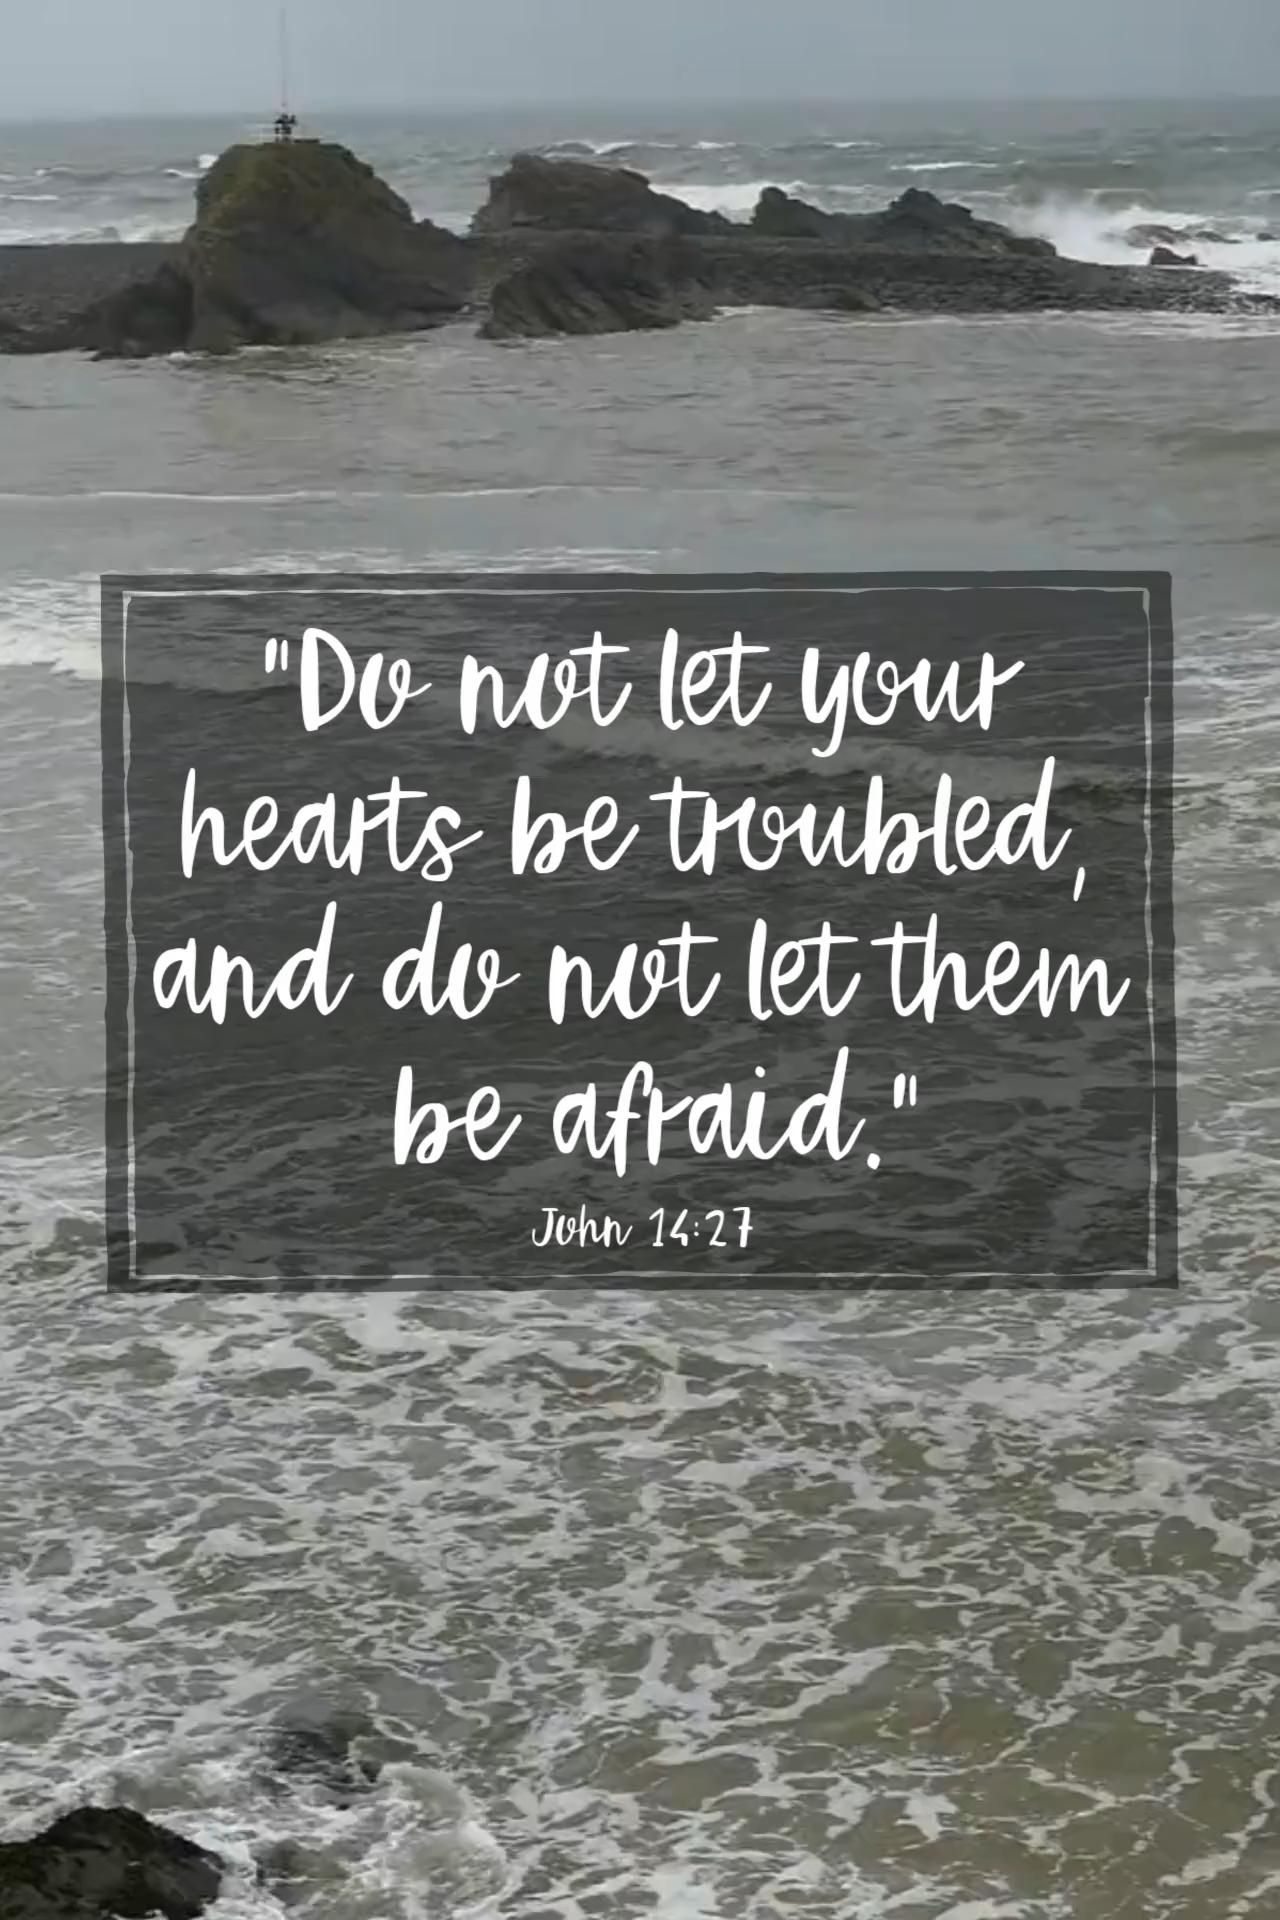 10 Bible Verses for Anxiety to Reclaim Your Peace